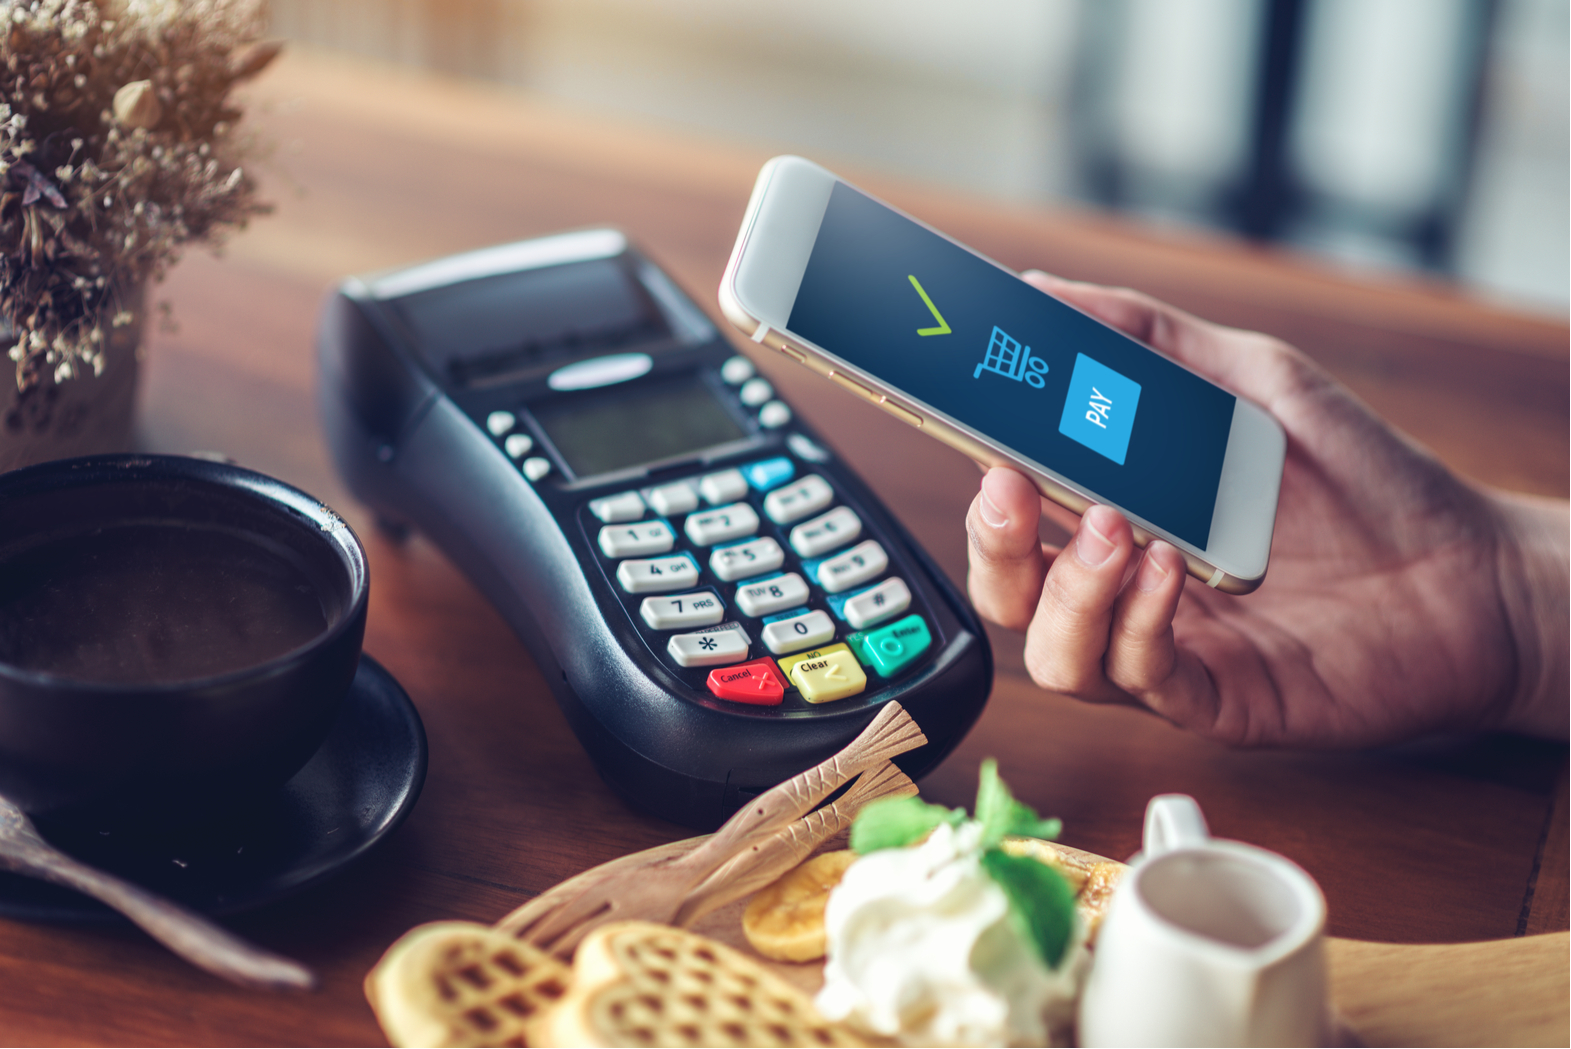 Payments innovation could cost banks $280bn in lost revenue by 2025